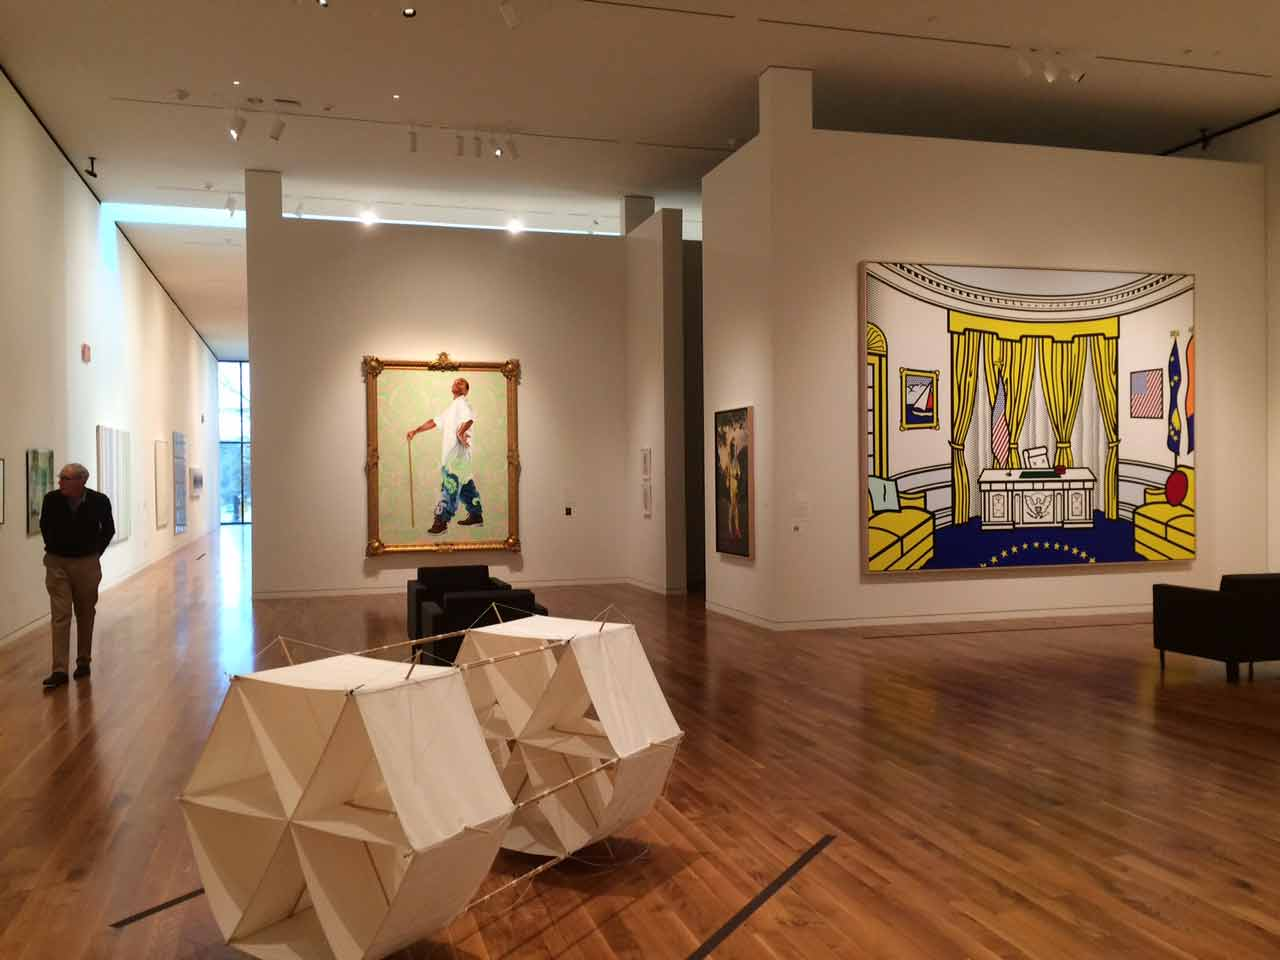 new-gallery-with-Lichtenstein-and-Wiley-paintings